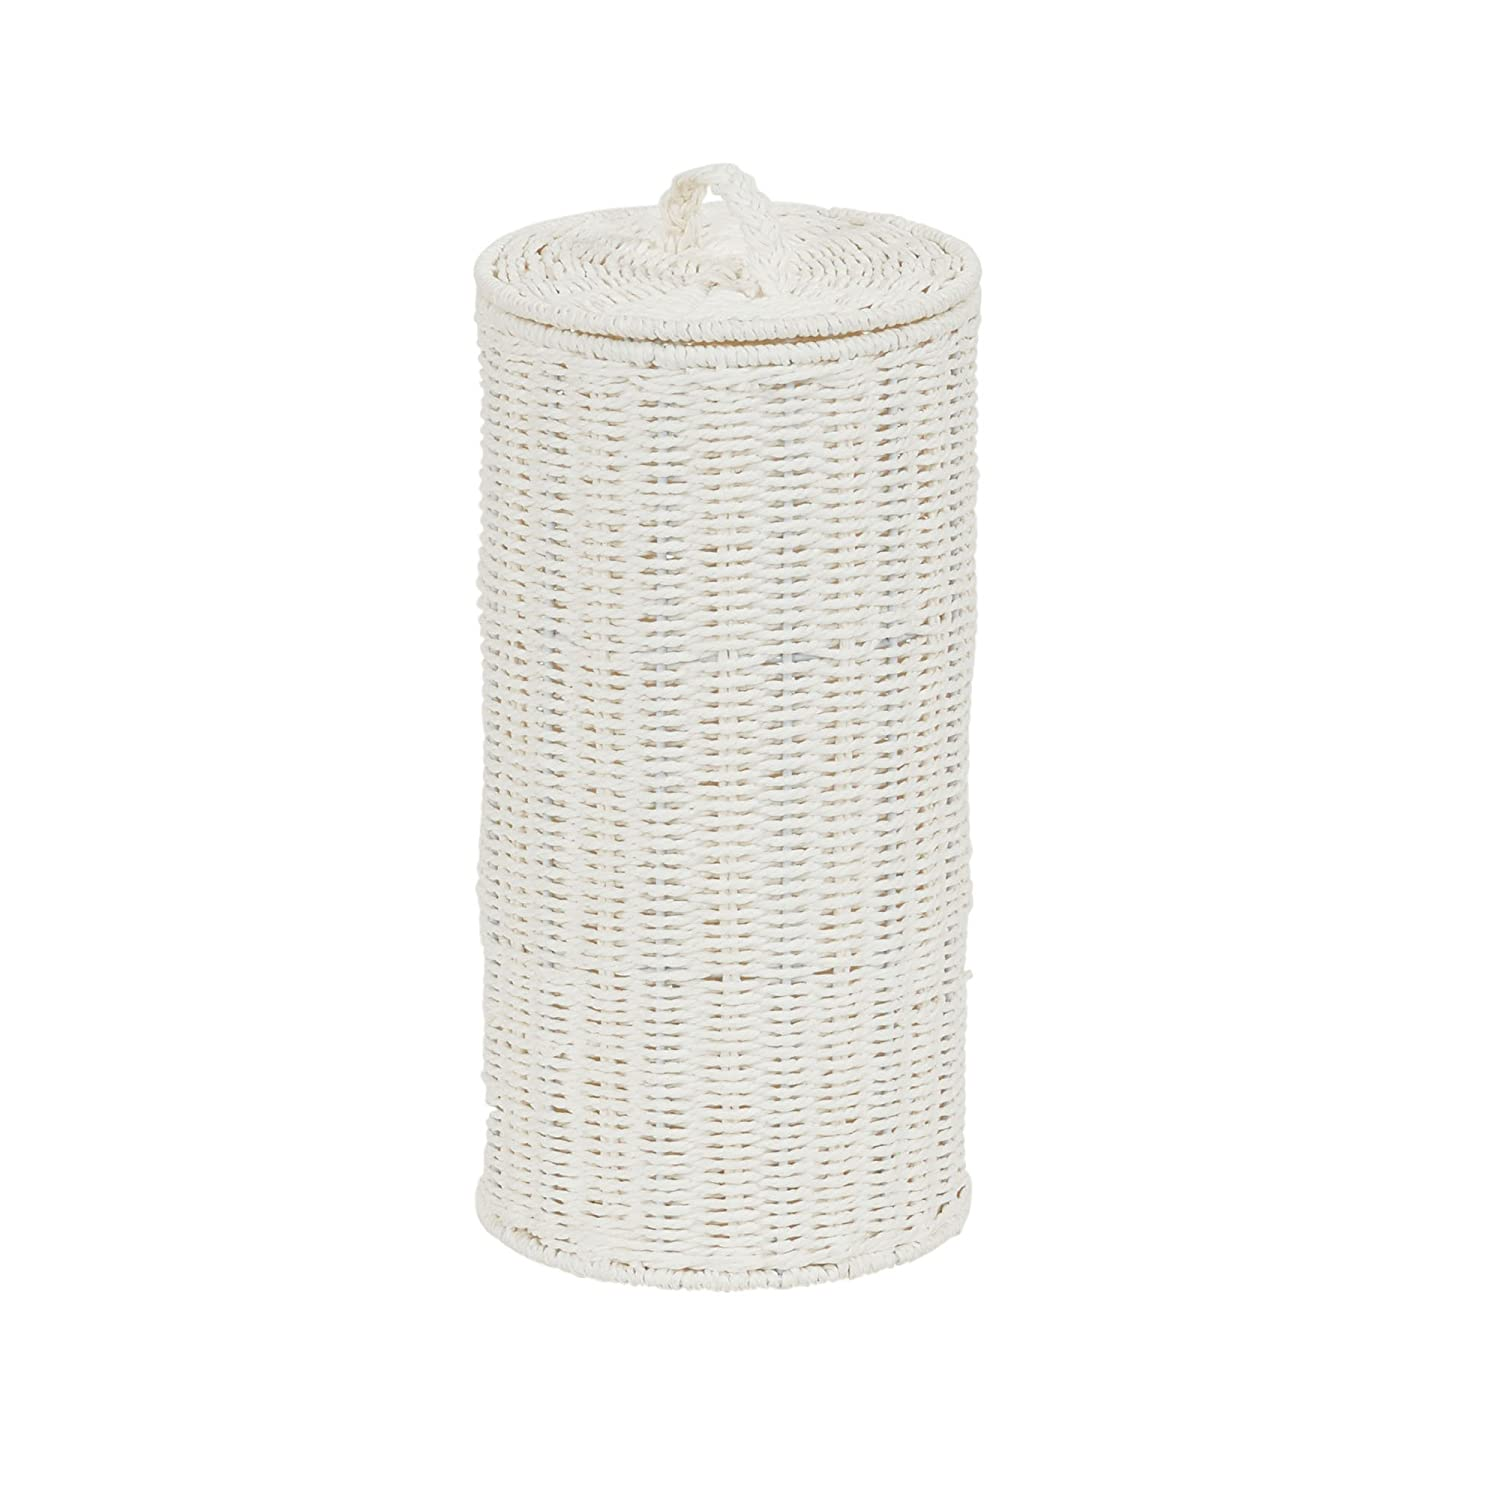 Household Essentials ML-6694 Wicker Toilet Tissue Paper Holder | Free Standing | Natural